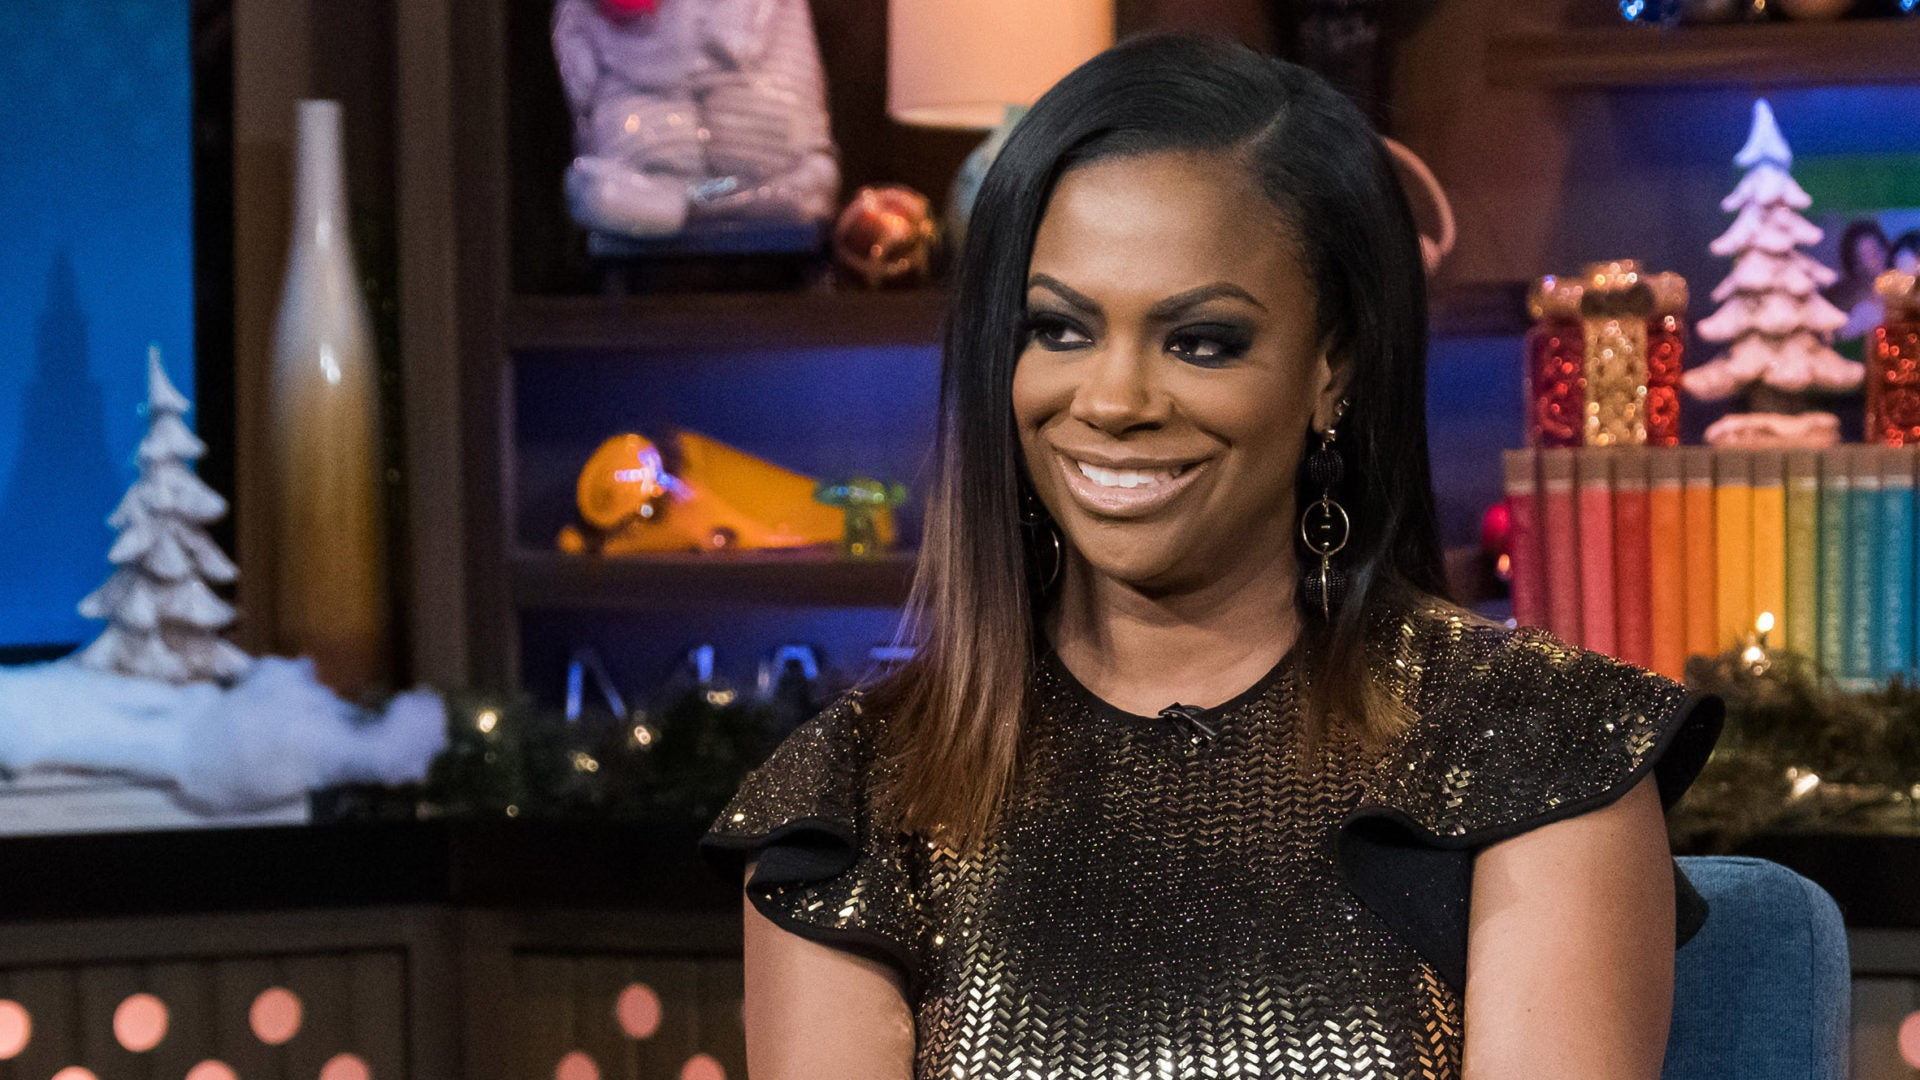 kandi-burruss-talks-to-fans-about-a-recent-makeup-class-that-impressed-her